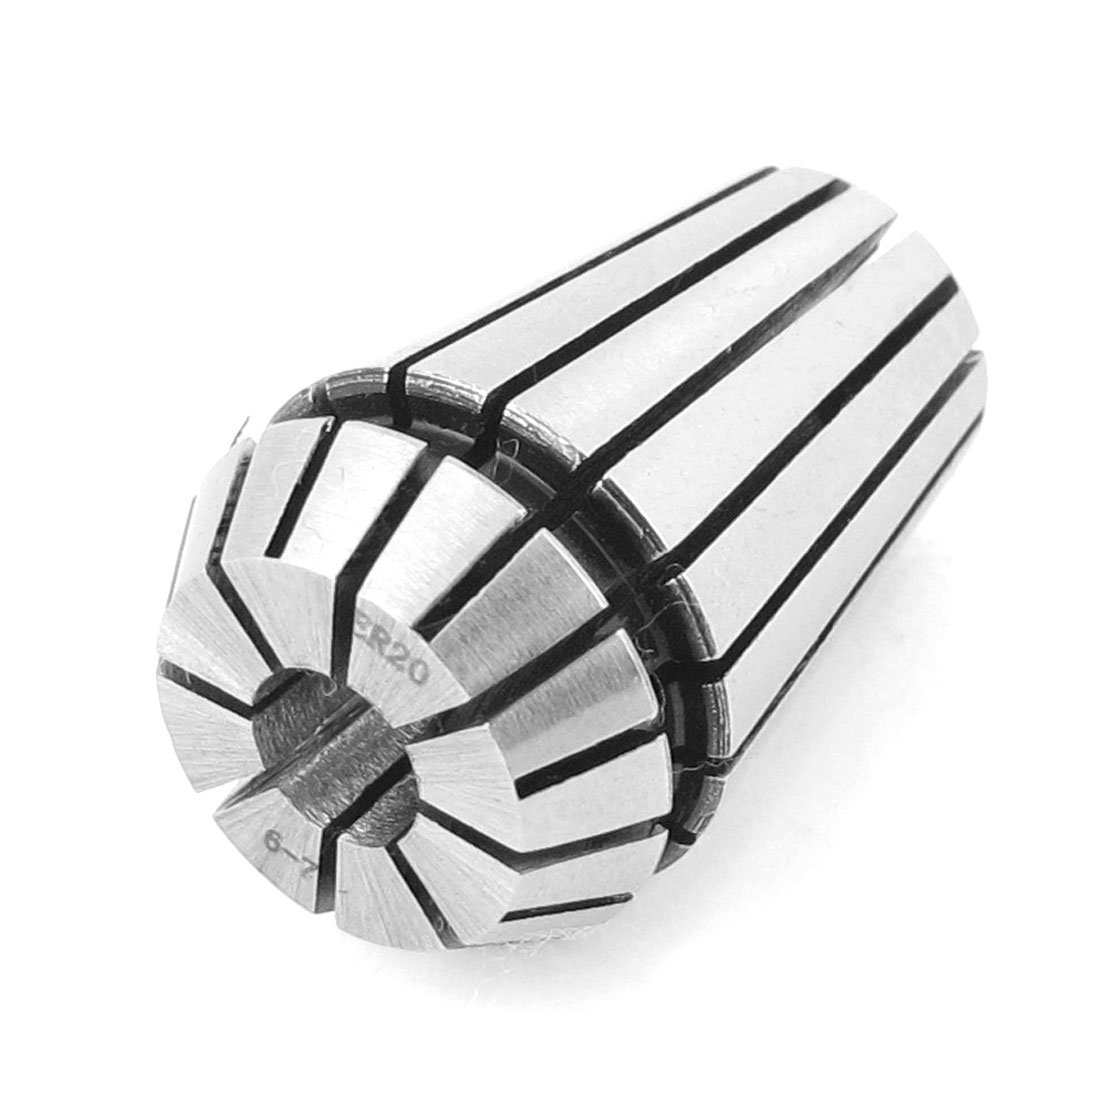 Round Chuck Mill Stainless Steel Spring Collet ER20 ER-20 6mm-7mm